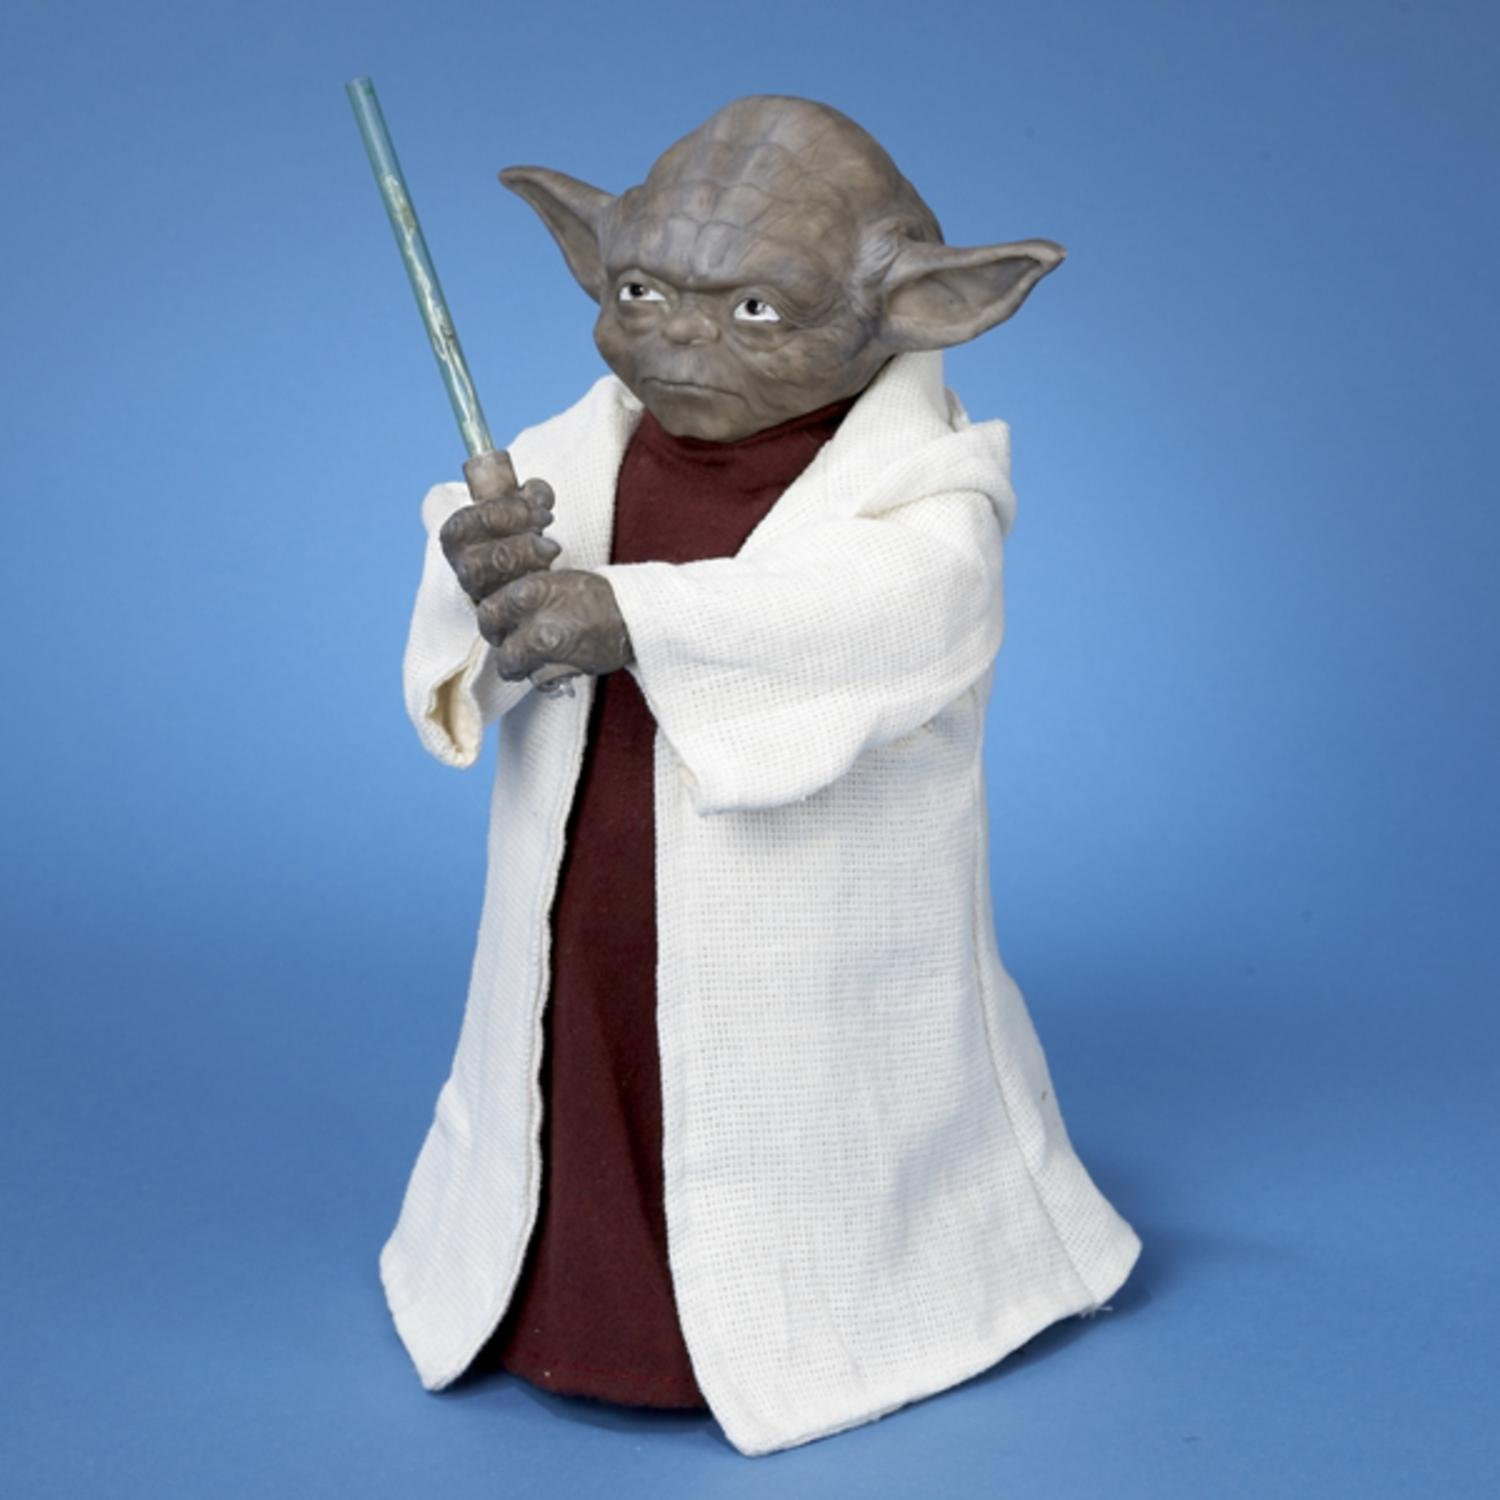 Star Wars Battery Operated Yoda With LED Light Saber and On/Off Button Tree Topper - Uses 3 ''AA'' Batteries (Not Included)